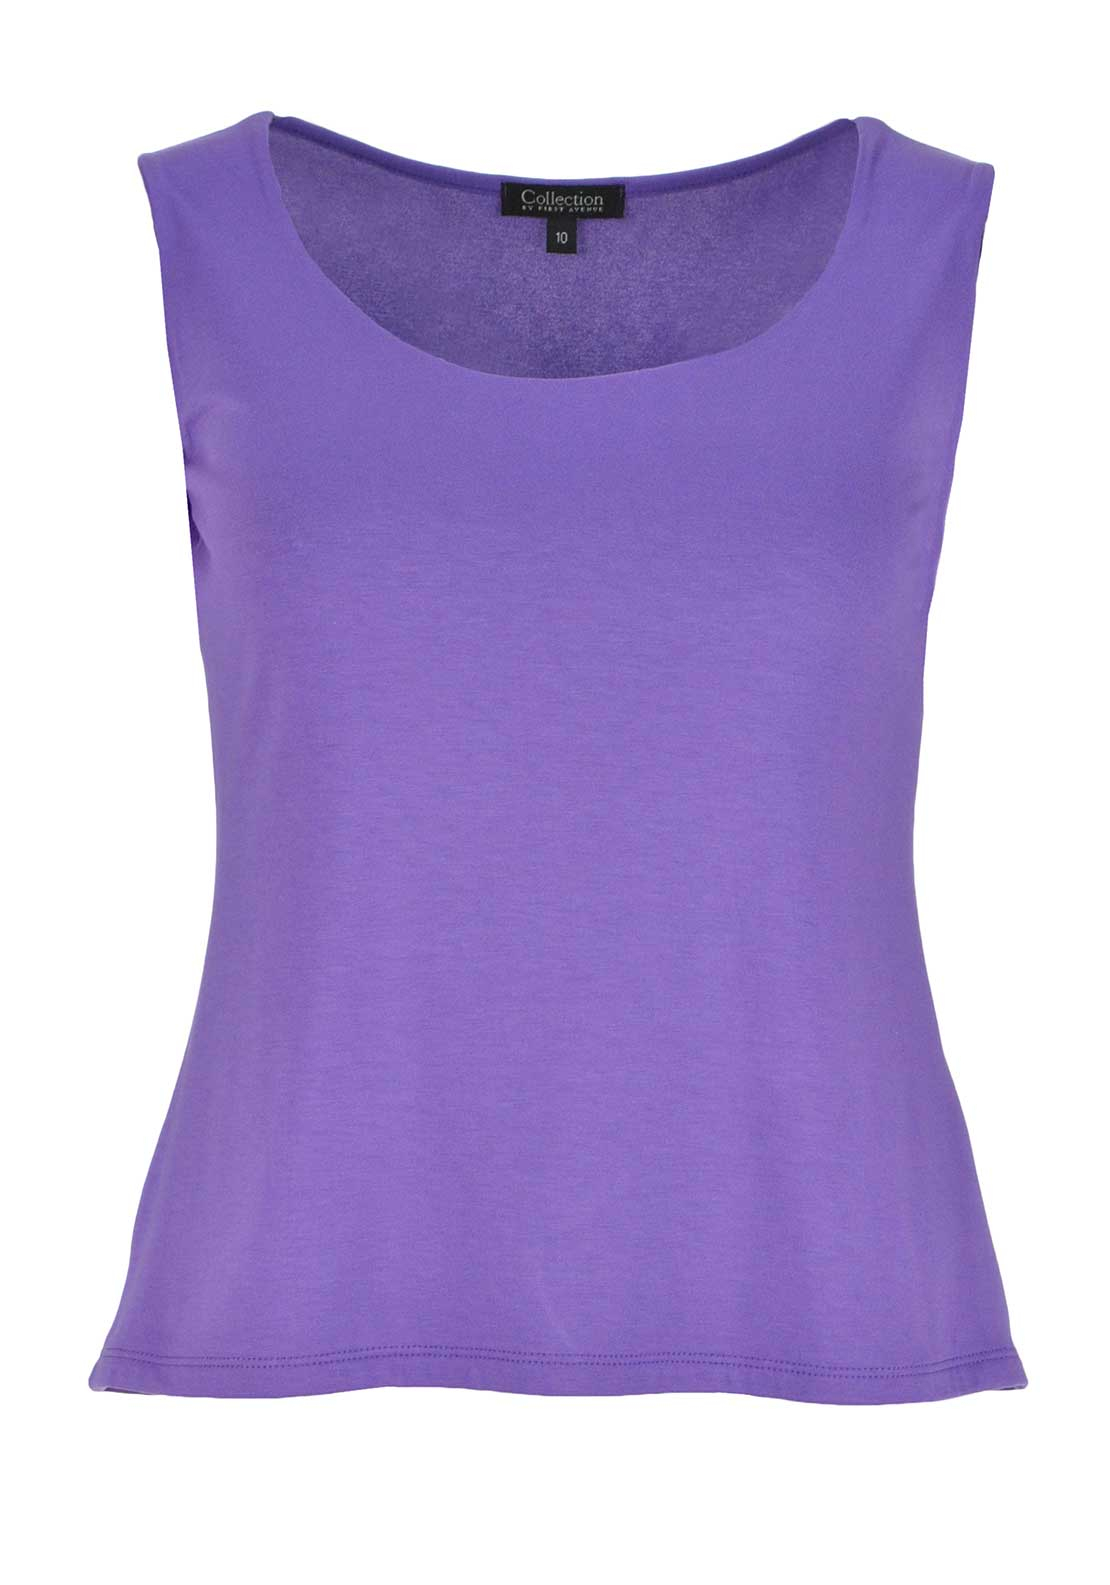 Collection by First Avenue Sleeveless Vest Top, Purple